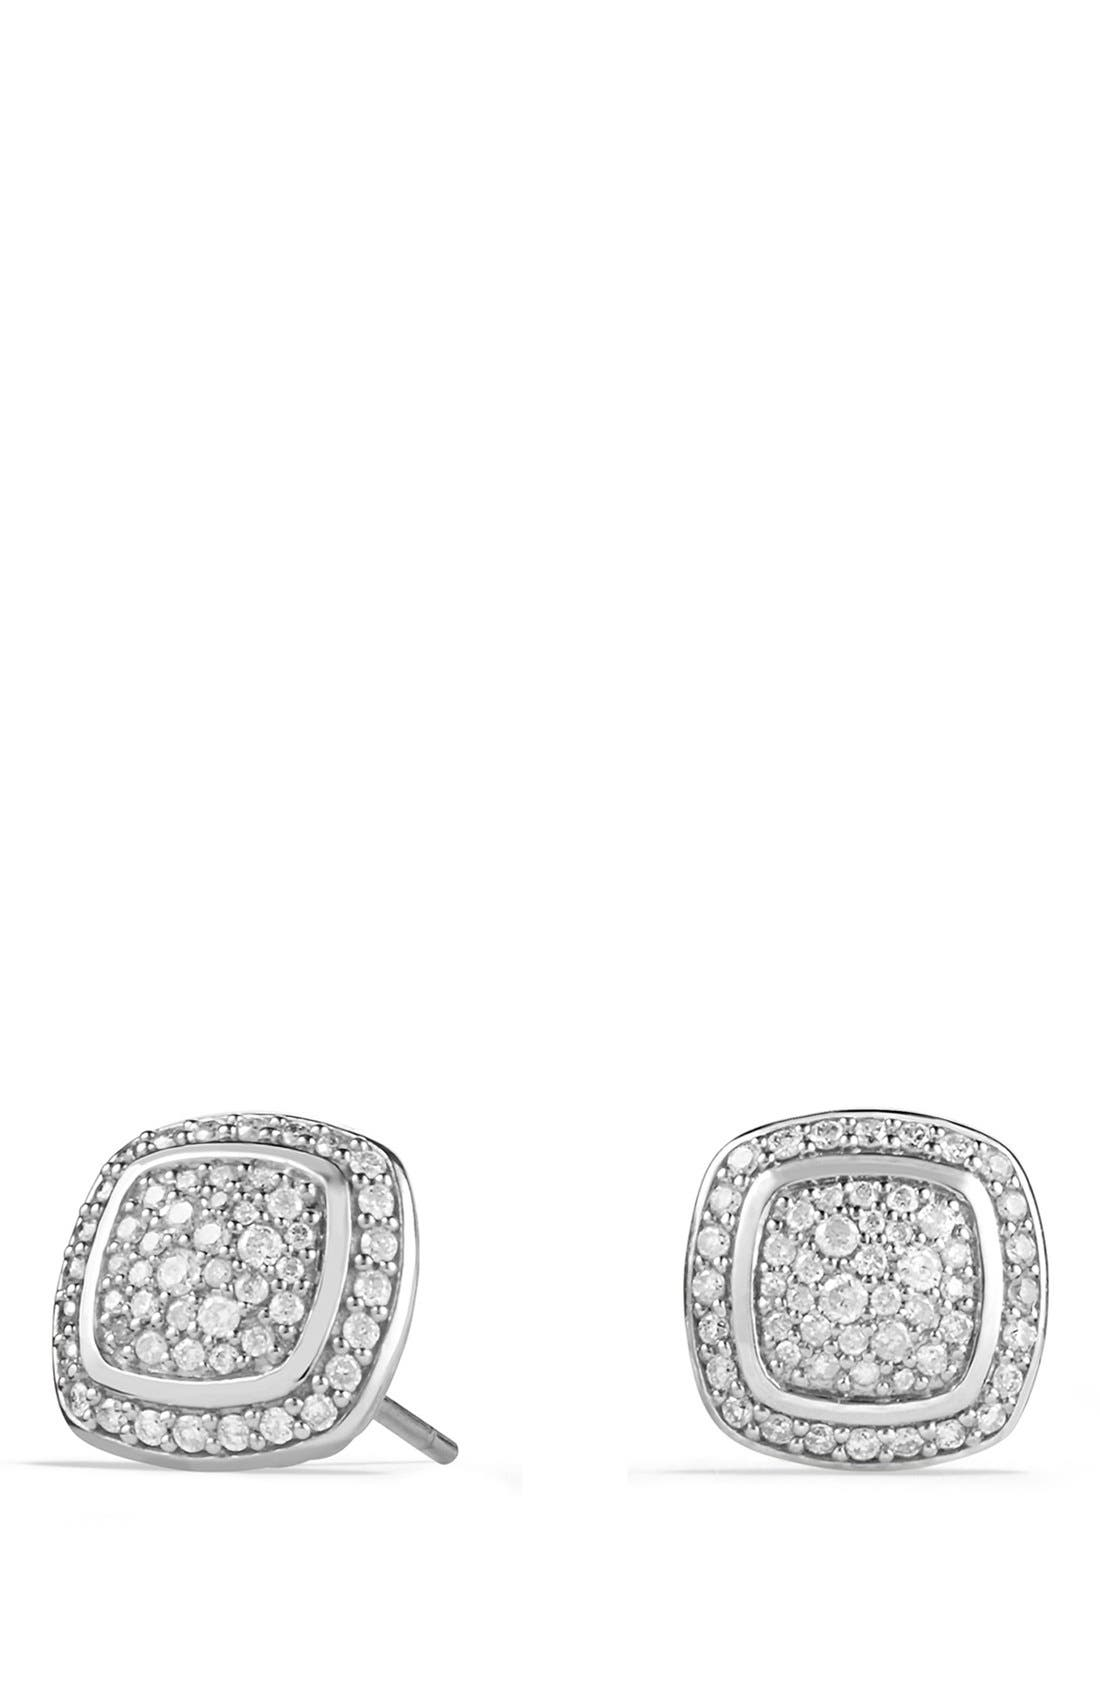 Main Image - David Yurman 'Albion' Earrings with Diamonds